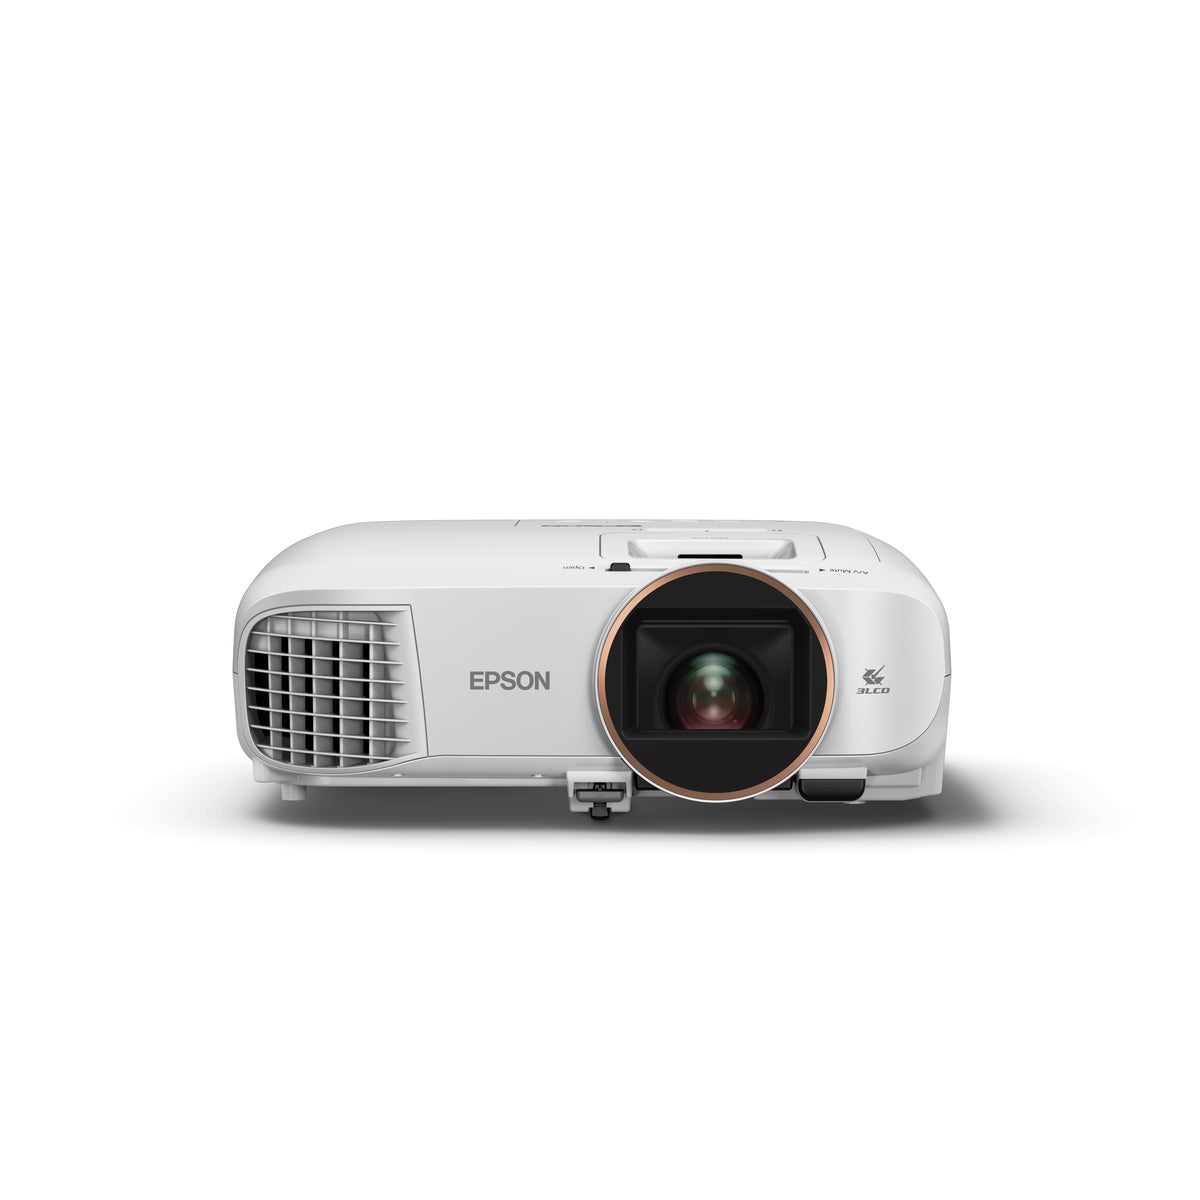 Epson EH-TW5650 (Home Theatre Projector) - AVStore.in